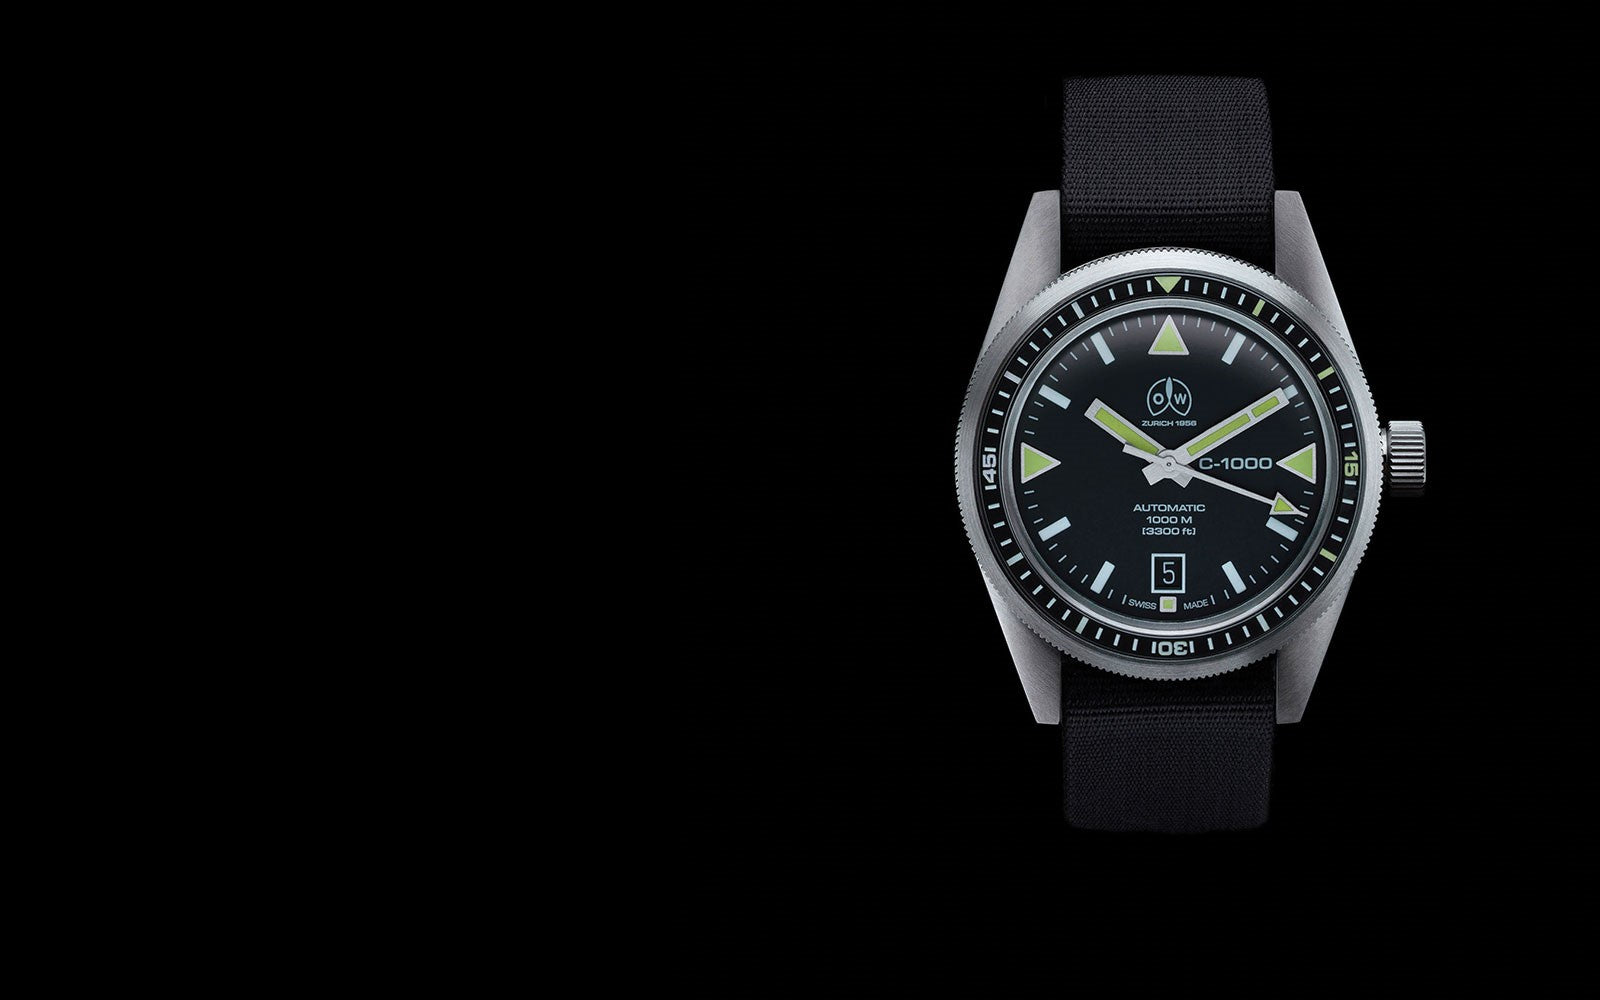 Ollech and Wajs C1000 diving watch